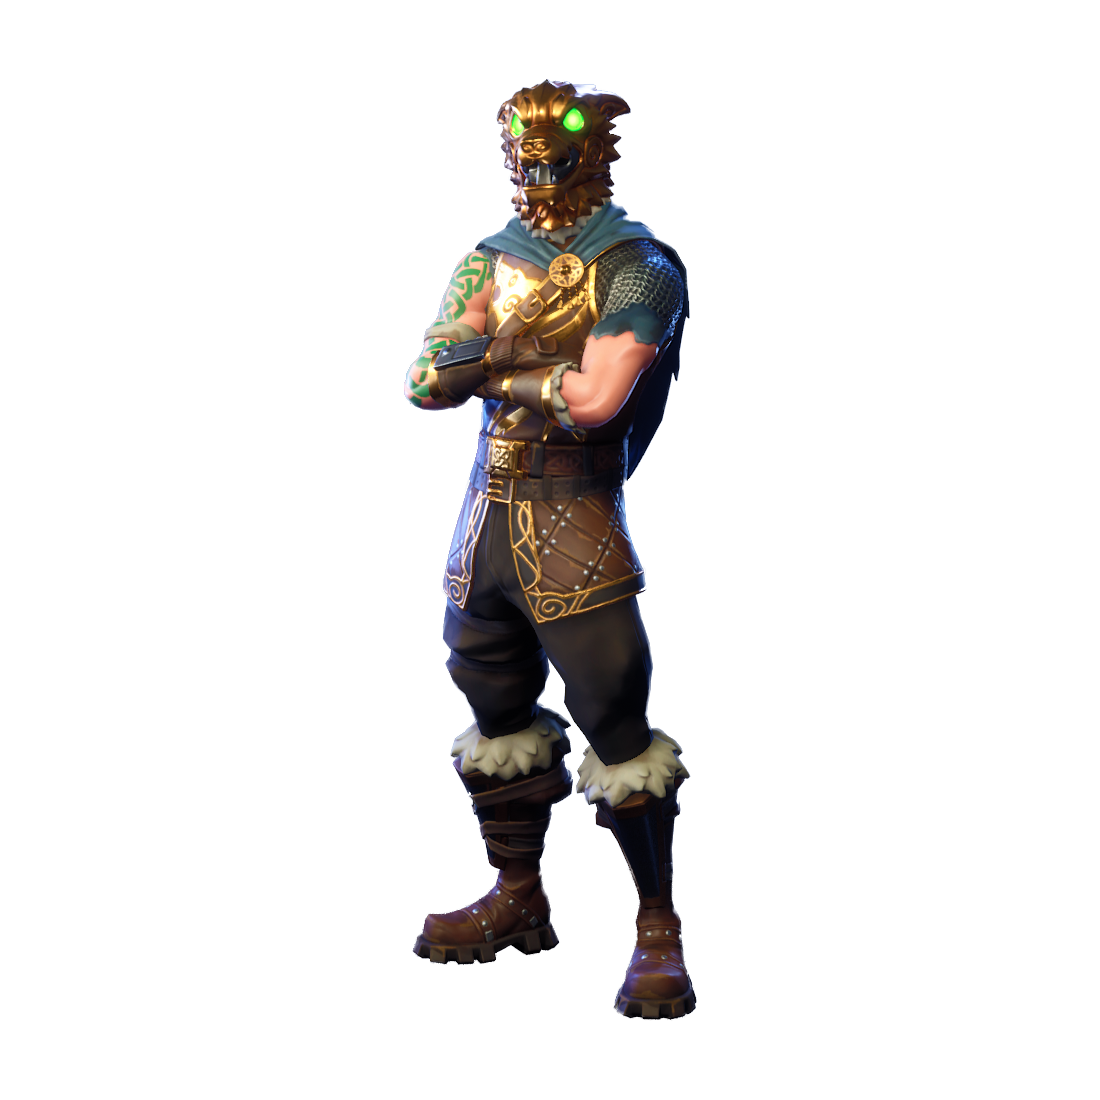 Fortnite png. Fnbr co cosmetics